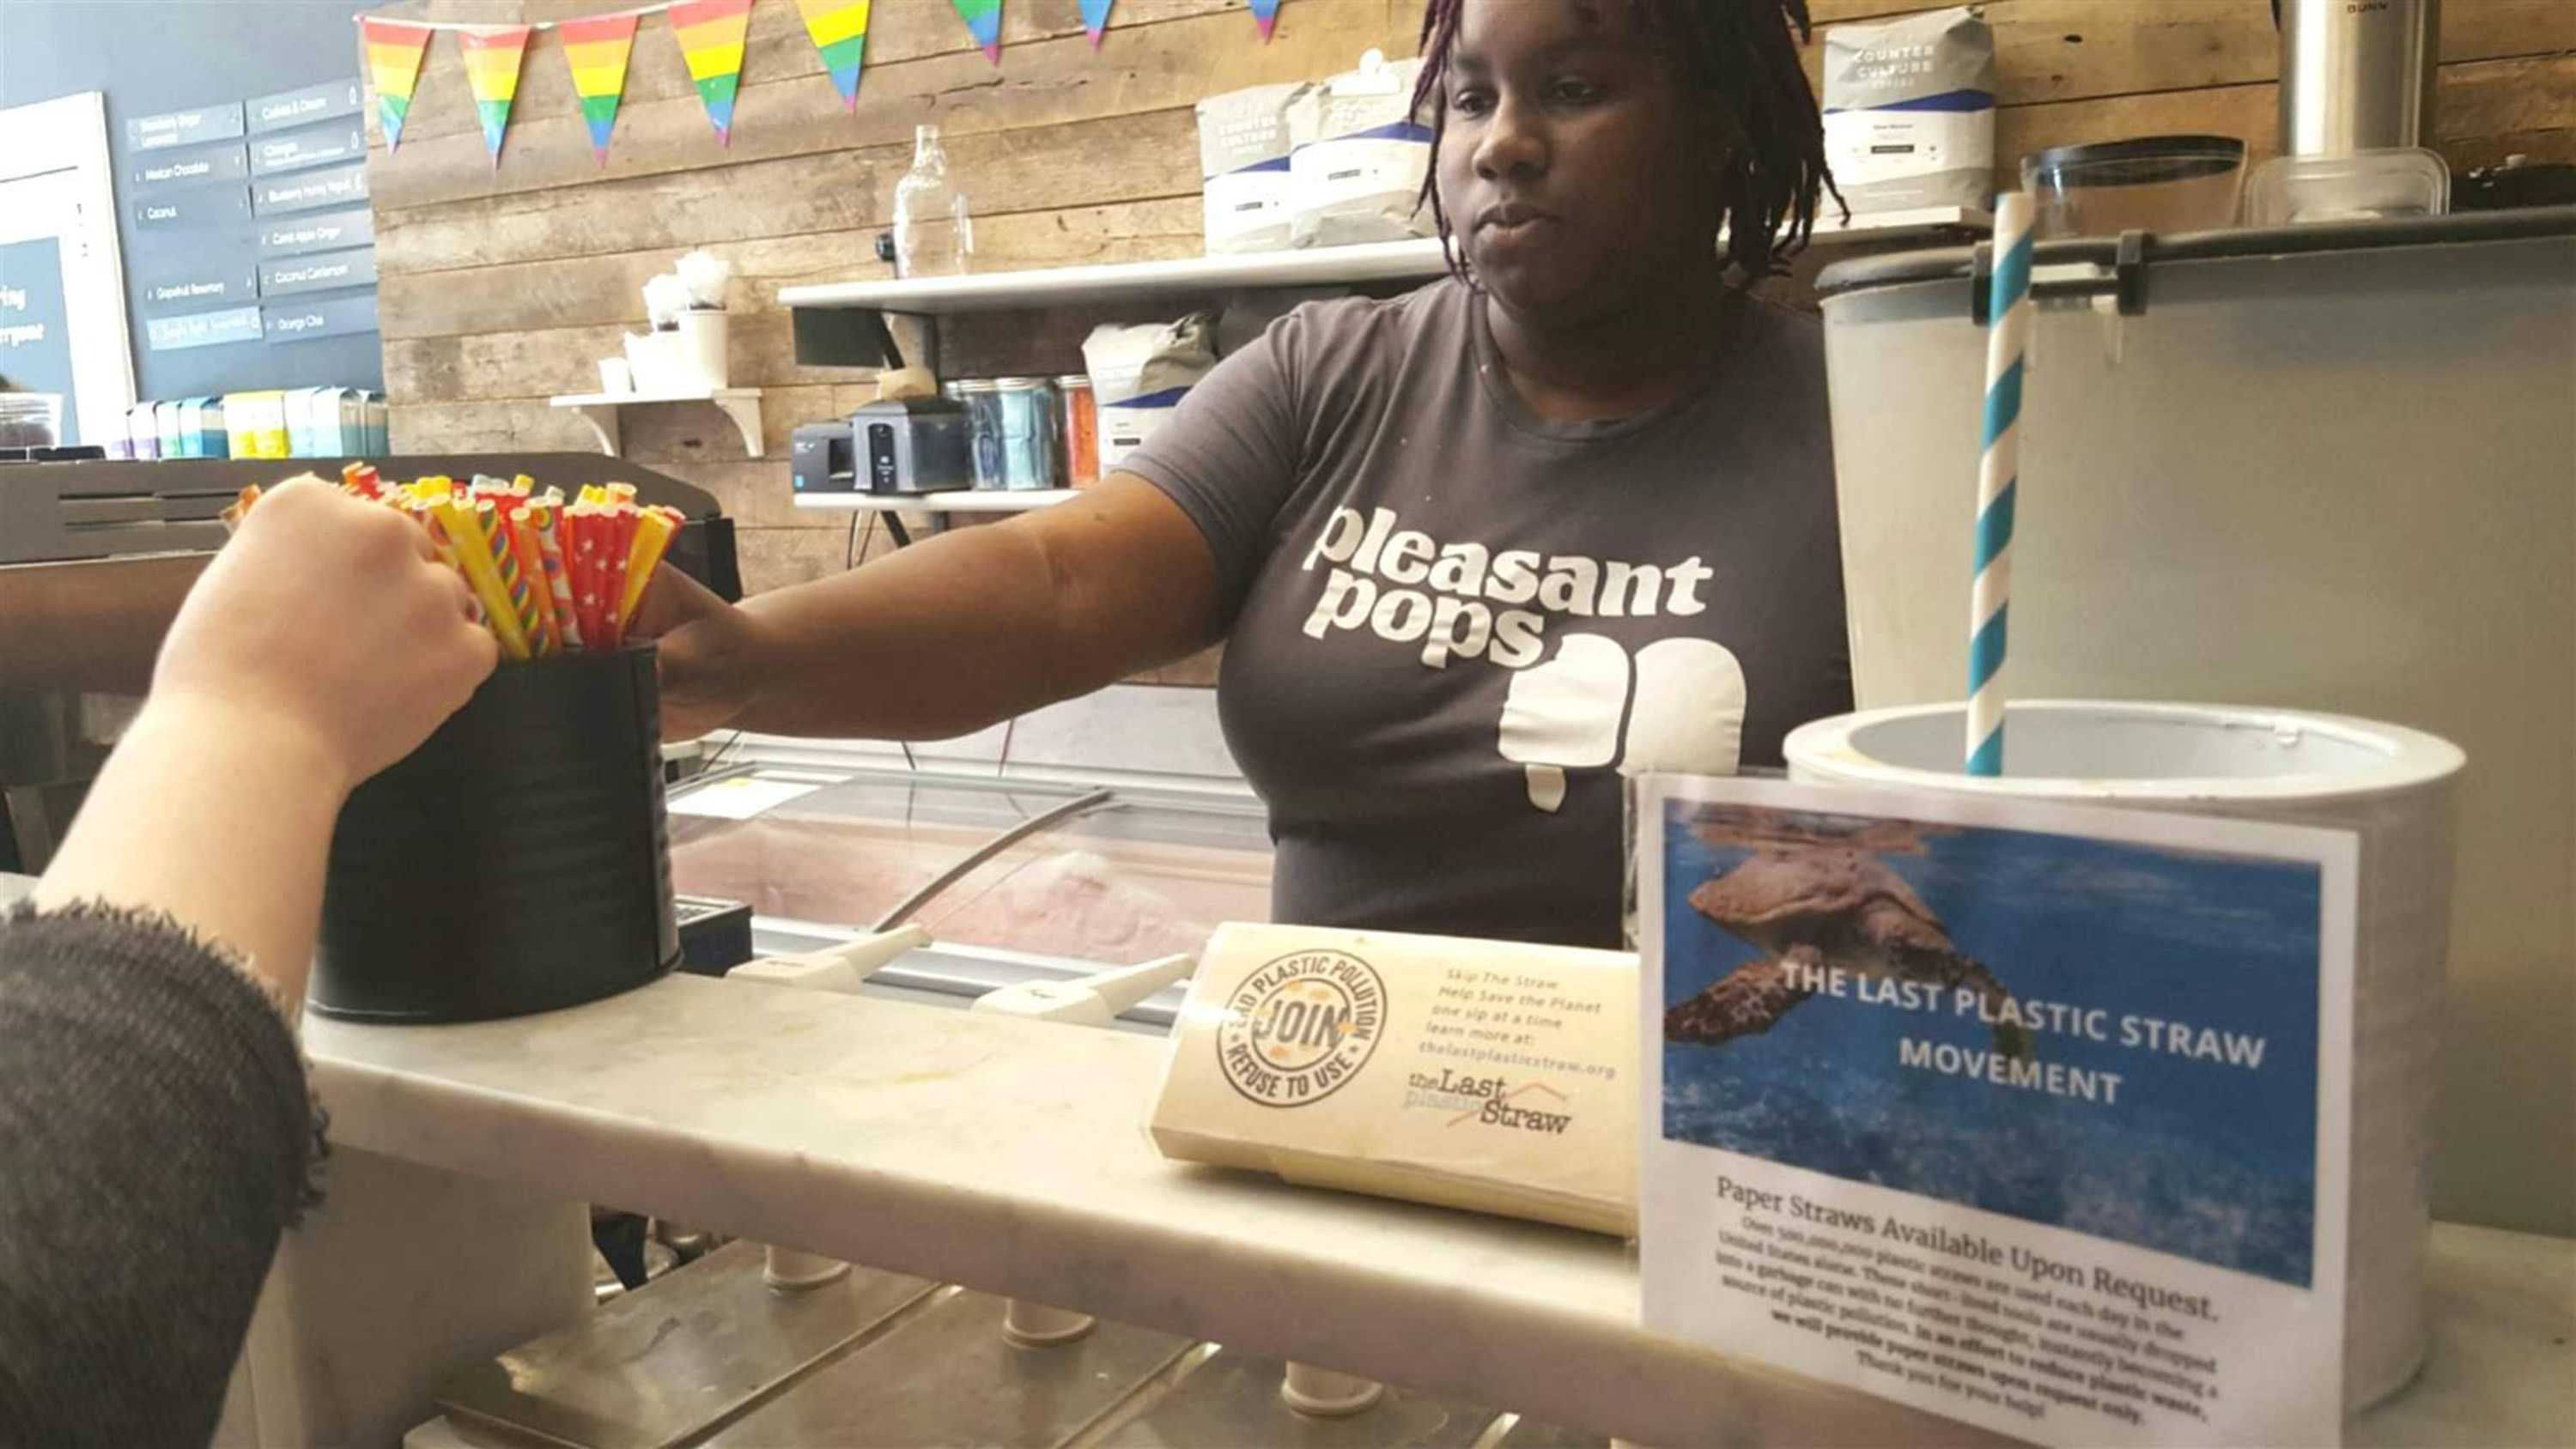 Nadia Bartholomew, a worker at Pleasant Pops coffee and treats shop in Washington, D.C., offers a customer a selection of paper straws. Pleasant Pops has joined the